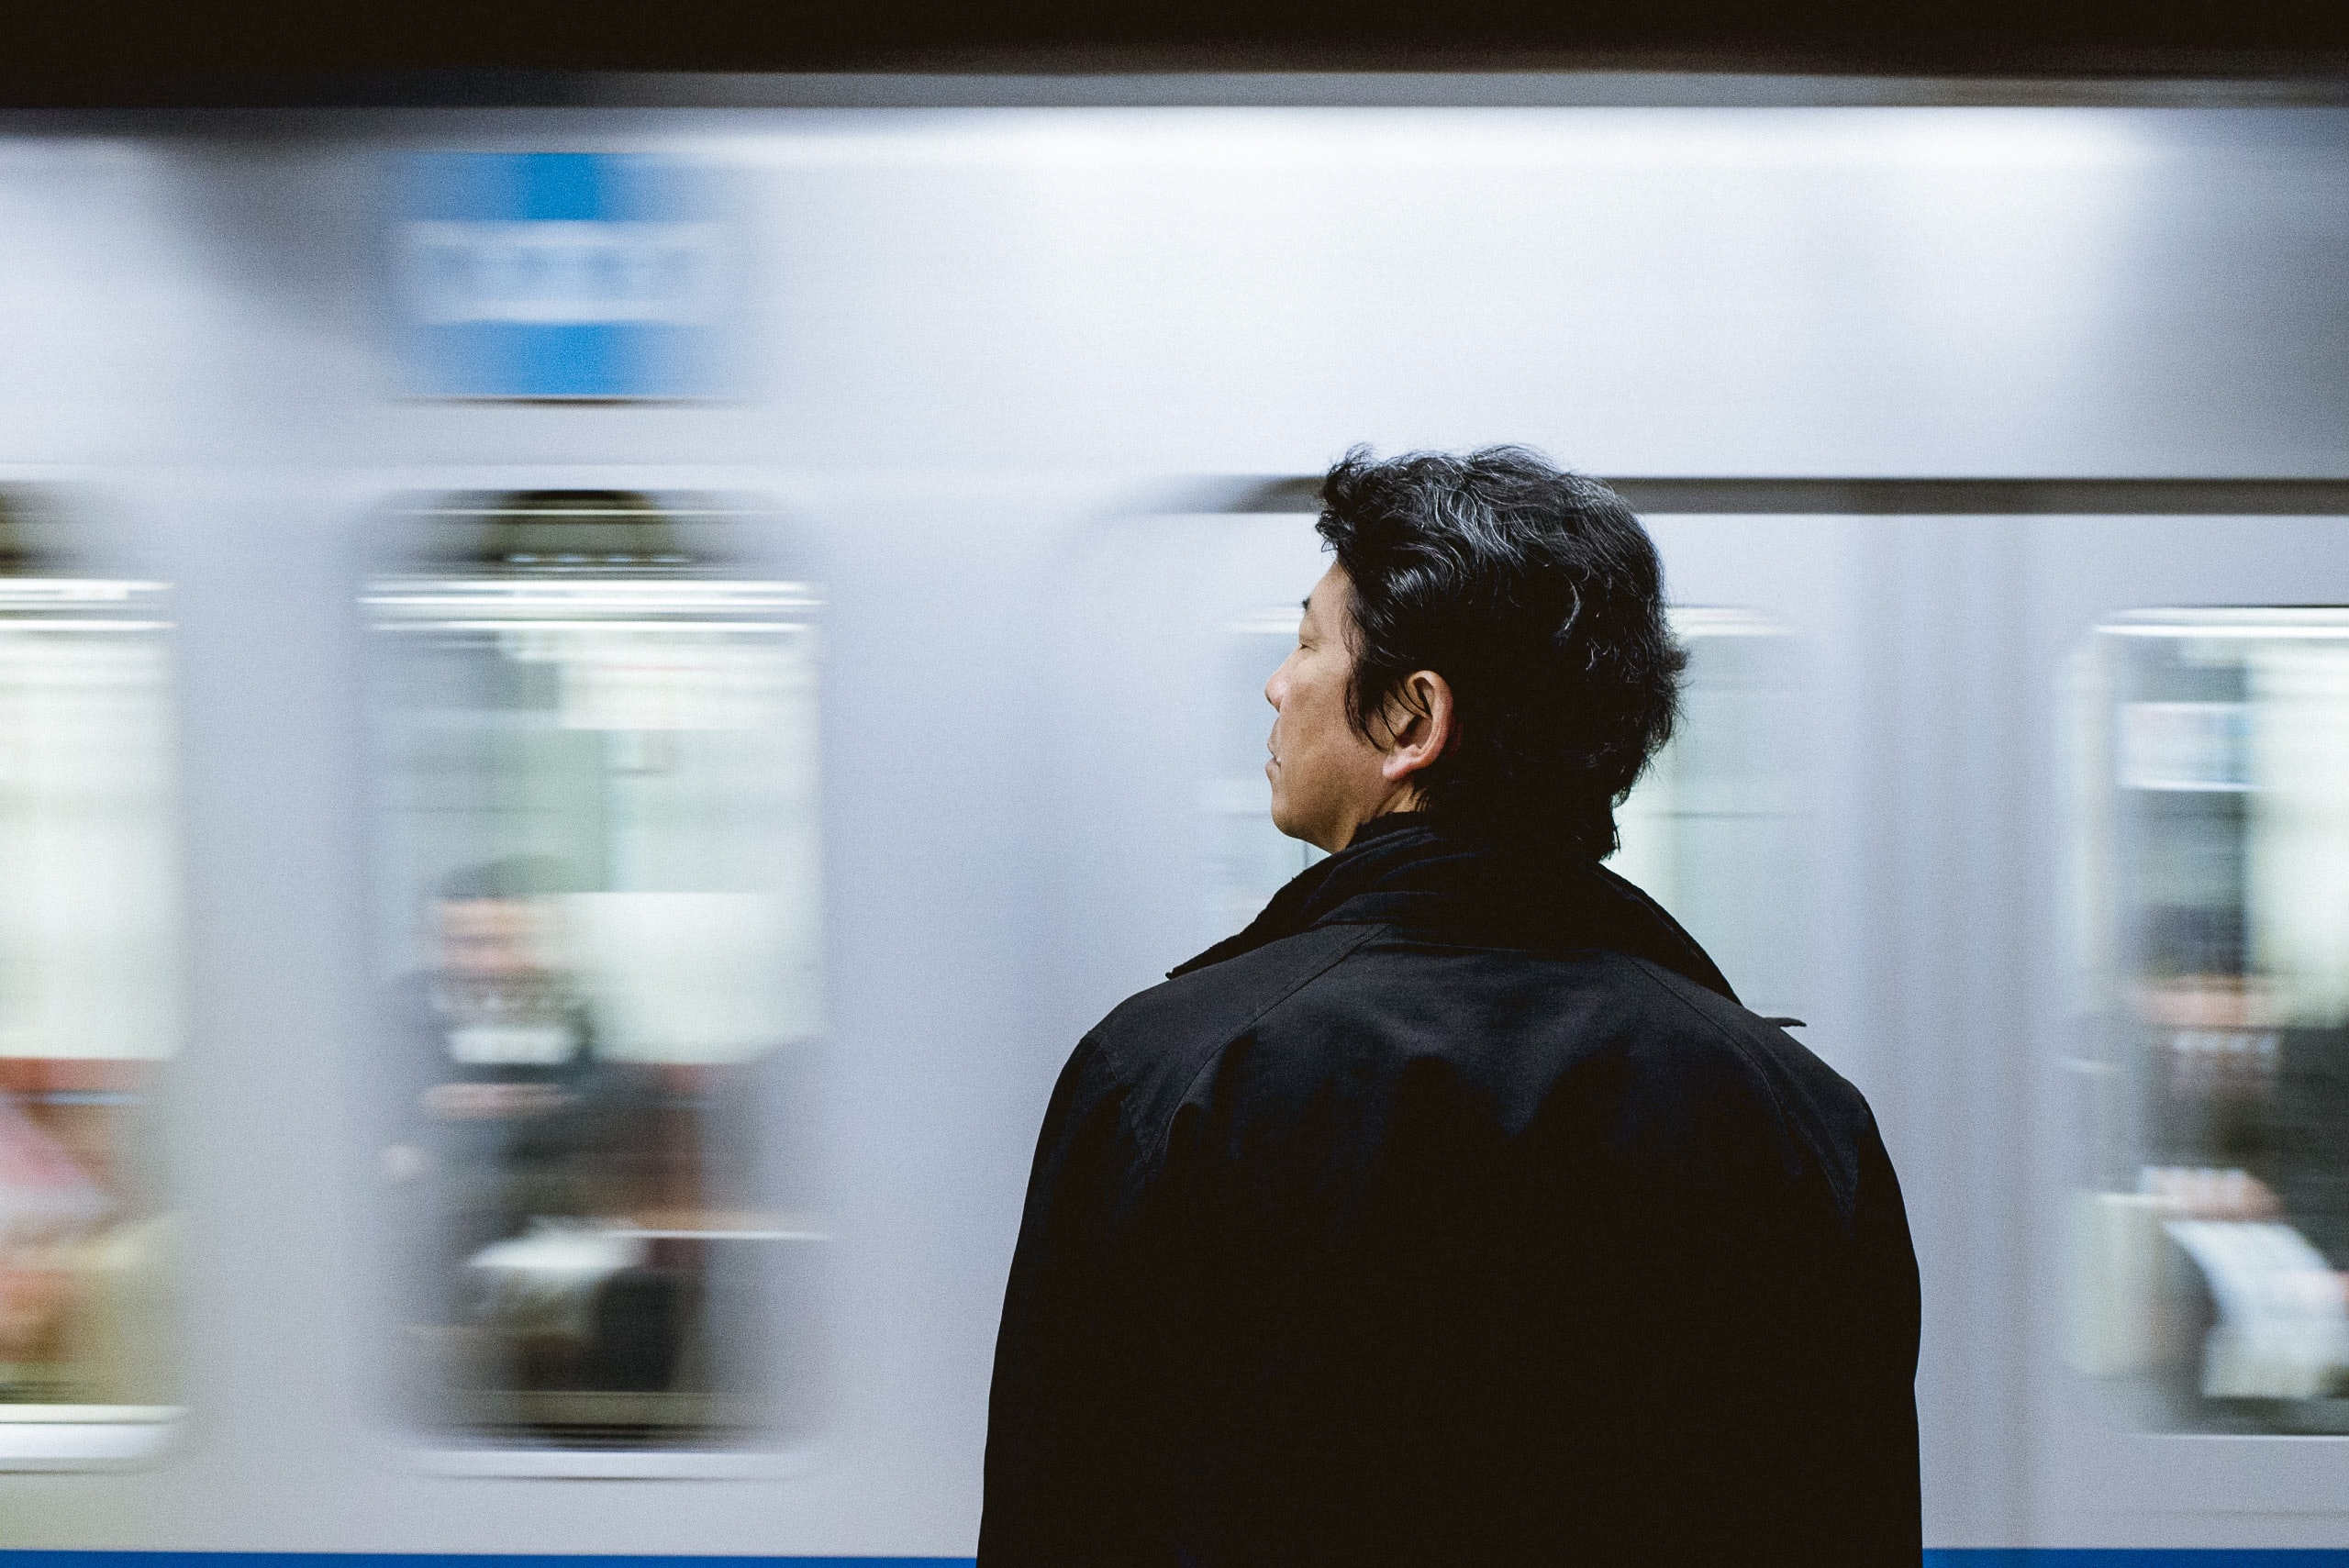 A man waits at the edge of the platform as a train arrives at the station